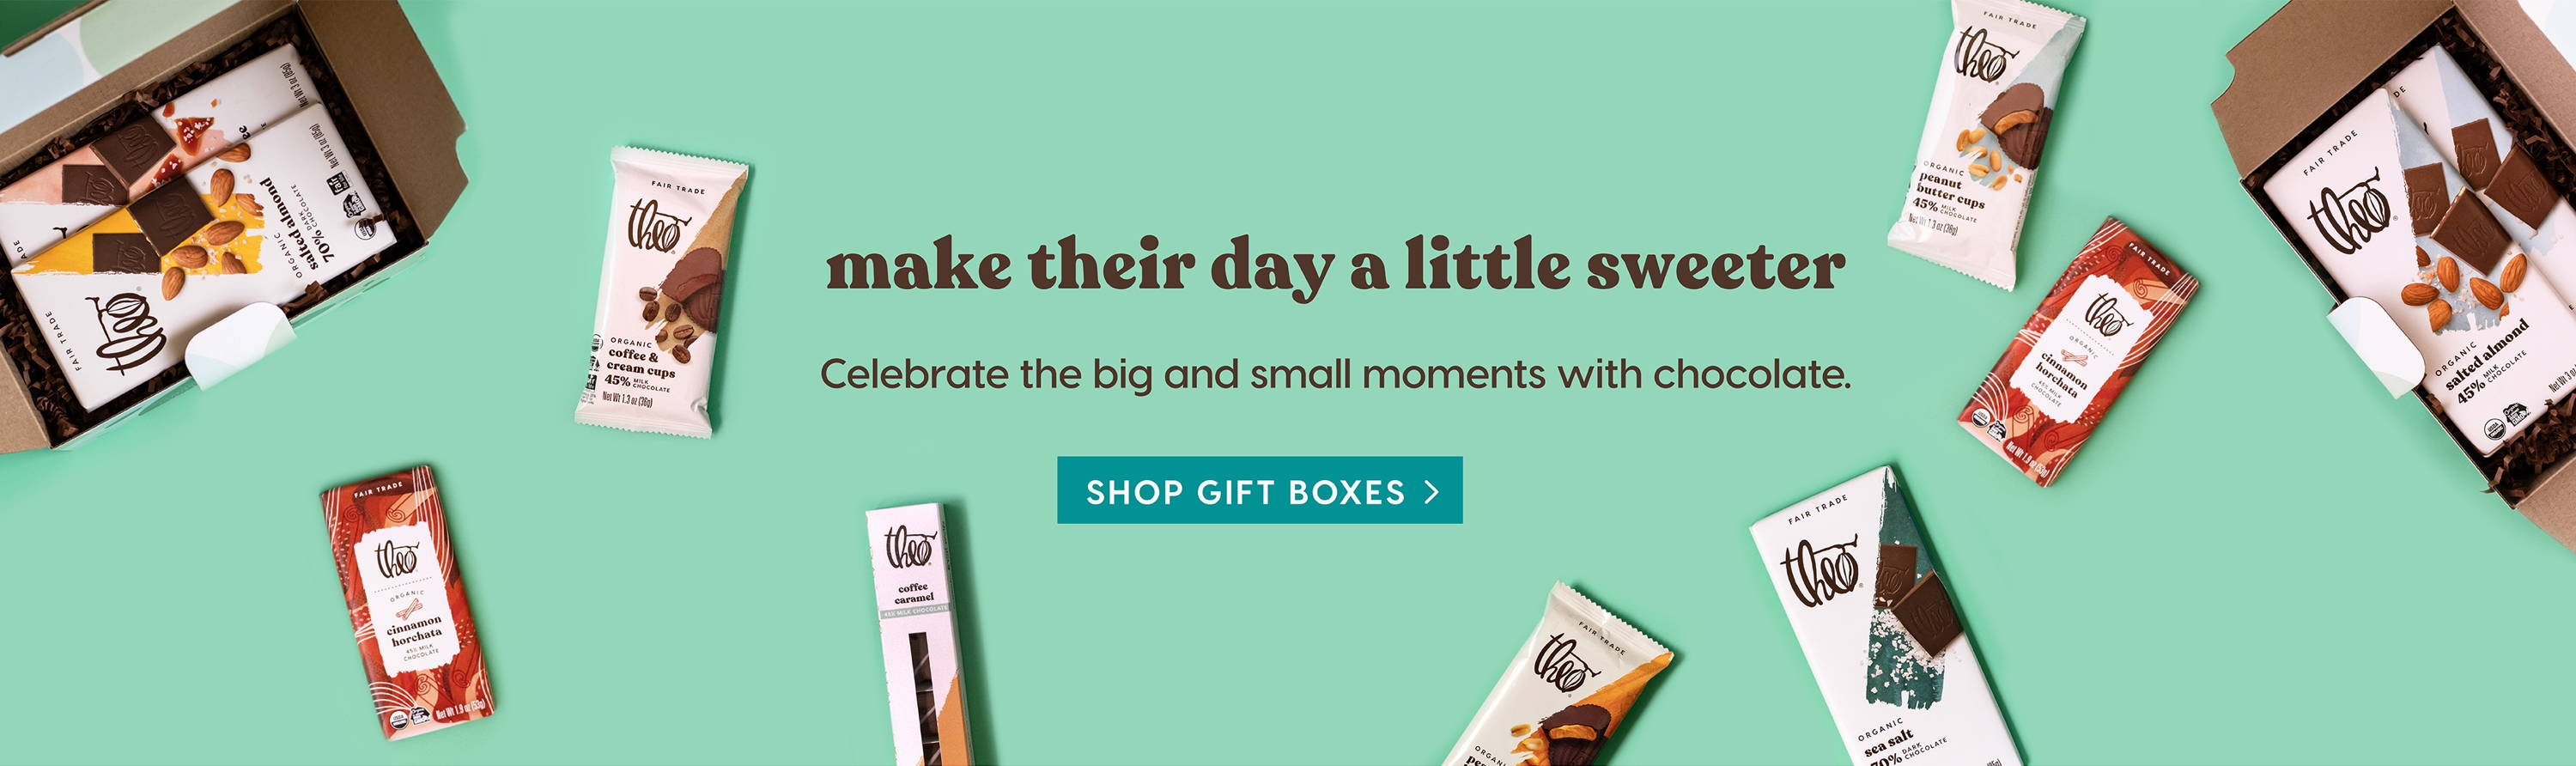 Make Their Day A Little Sweeter. Celebrate the big and small moments with chocolate. Shop Gift Boxes>